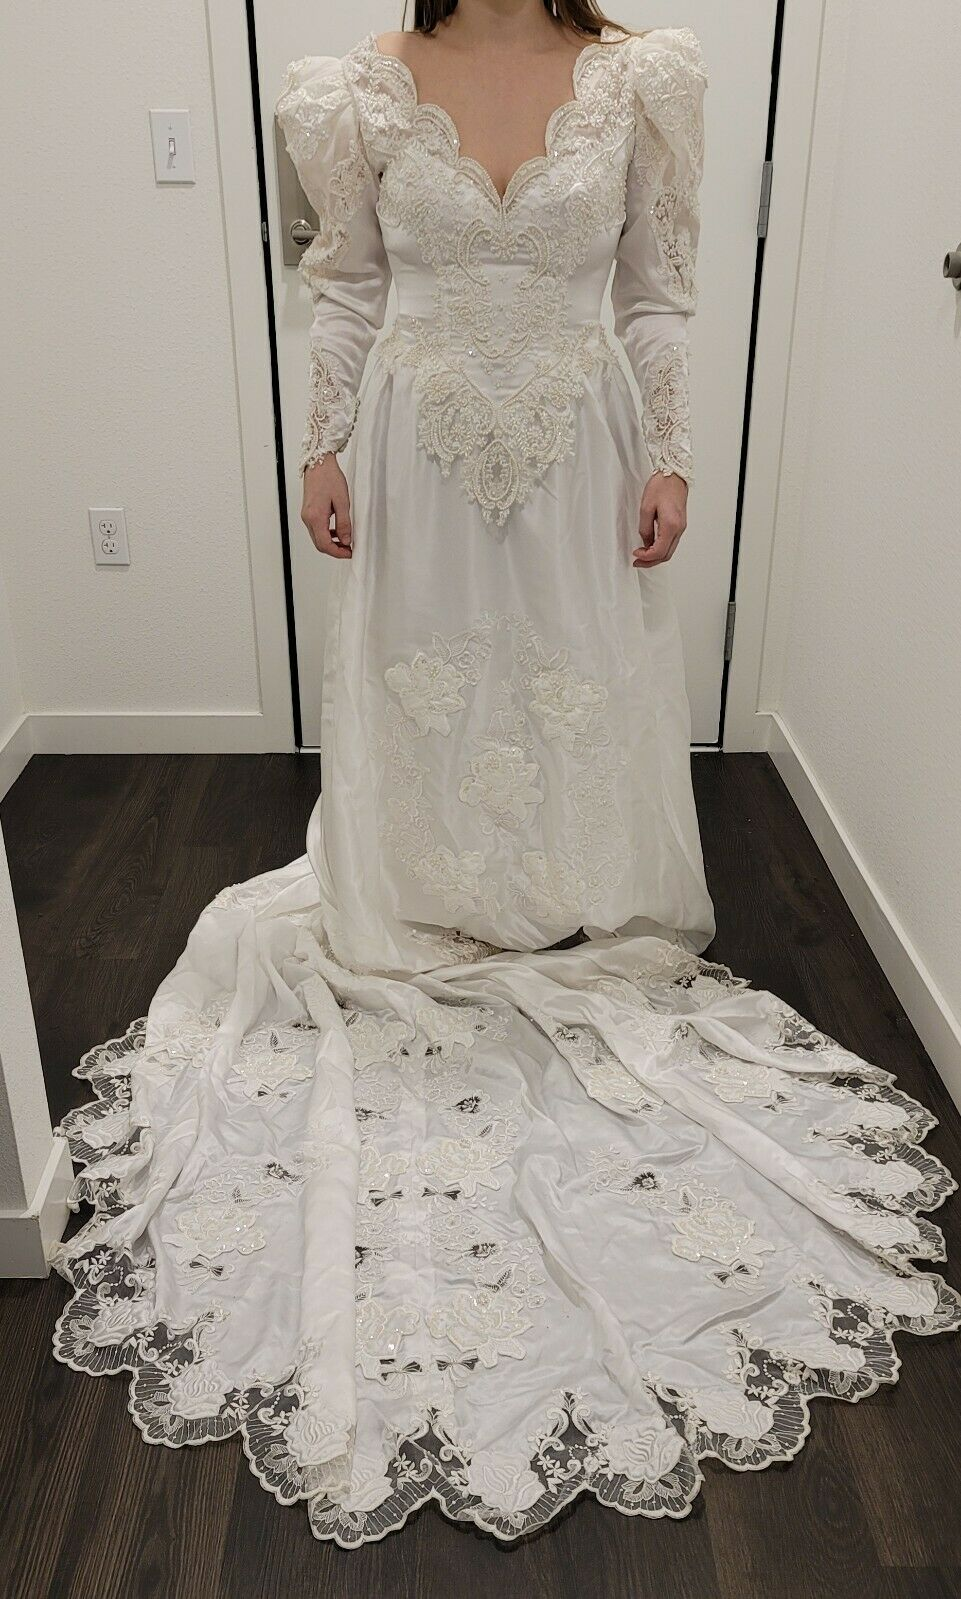 Vintage Wedding Dress with Lace Detailing and Embroidery - Veil & Headpiece